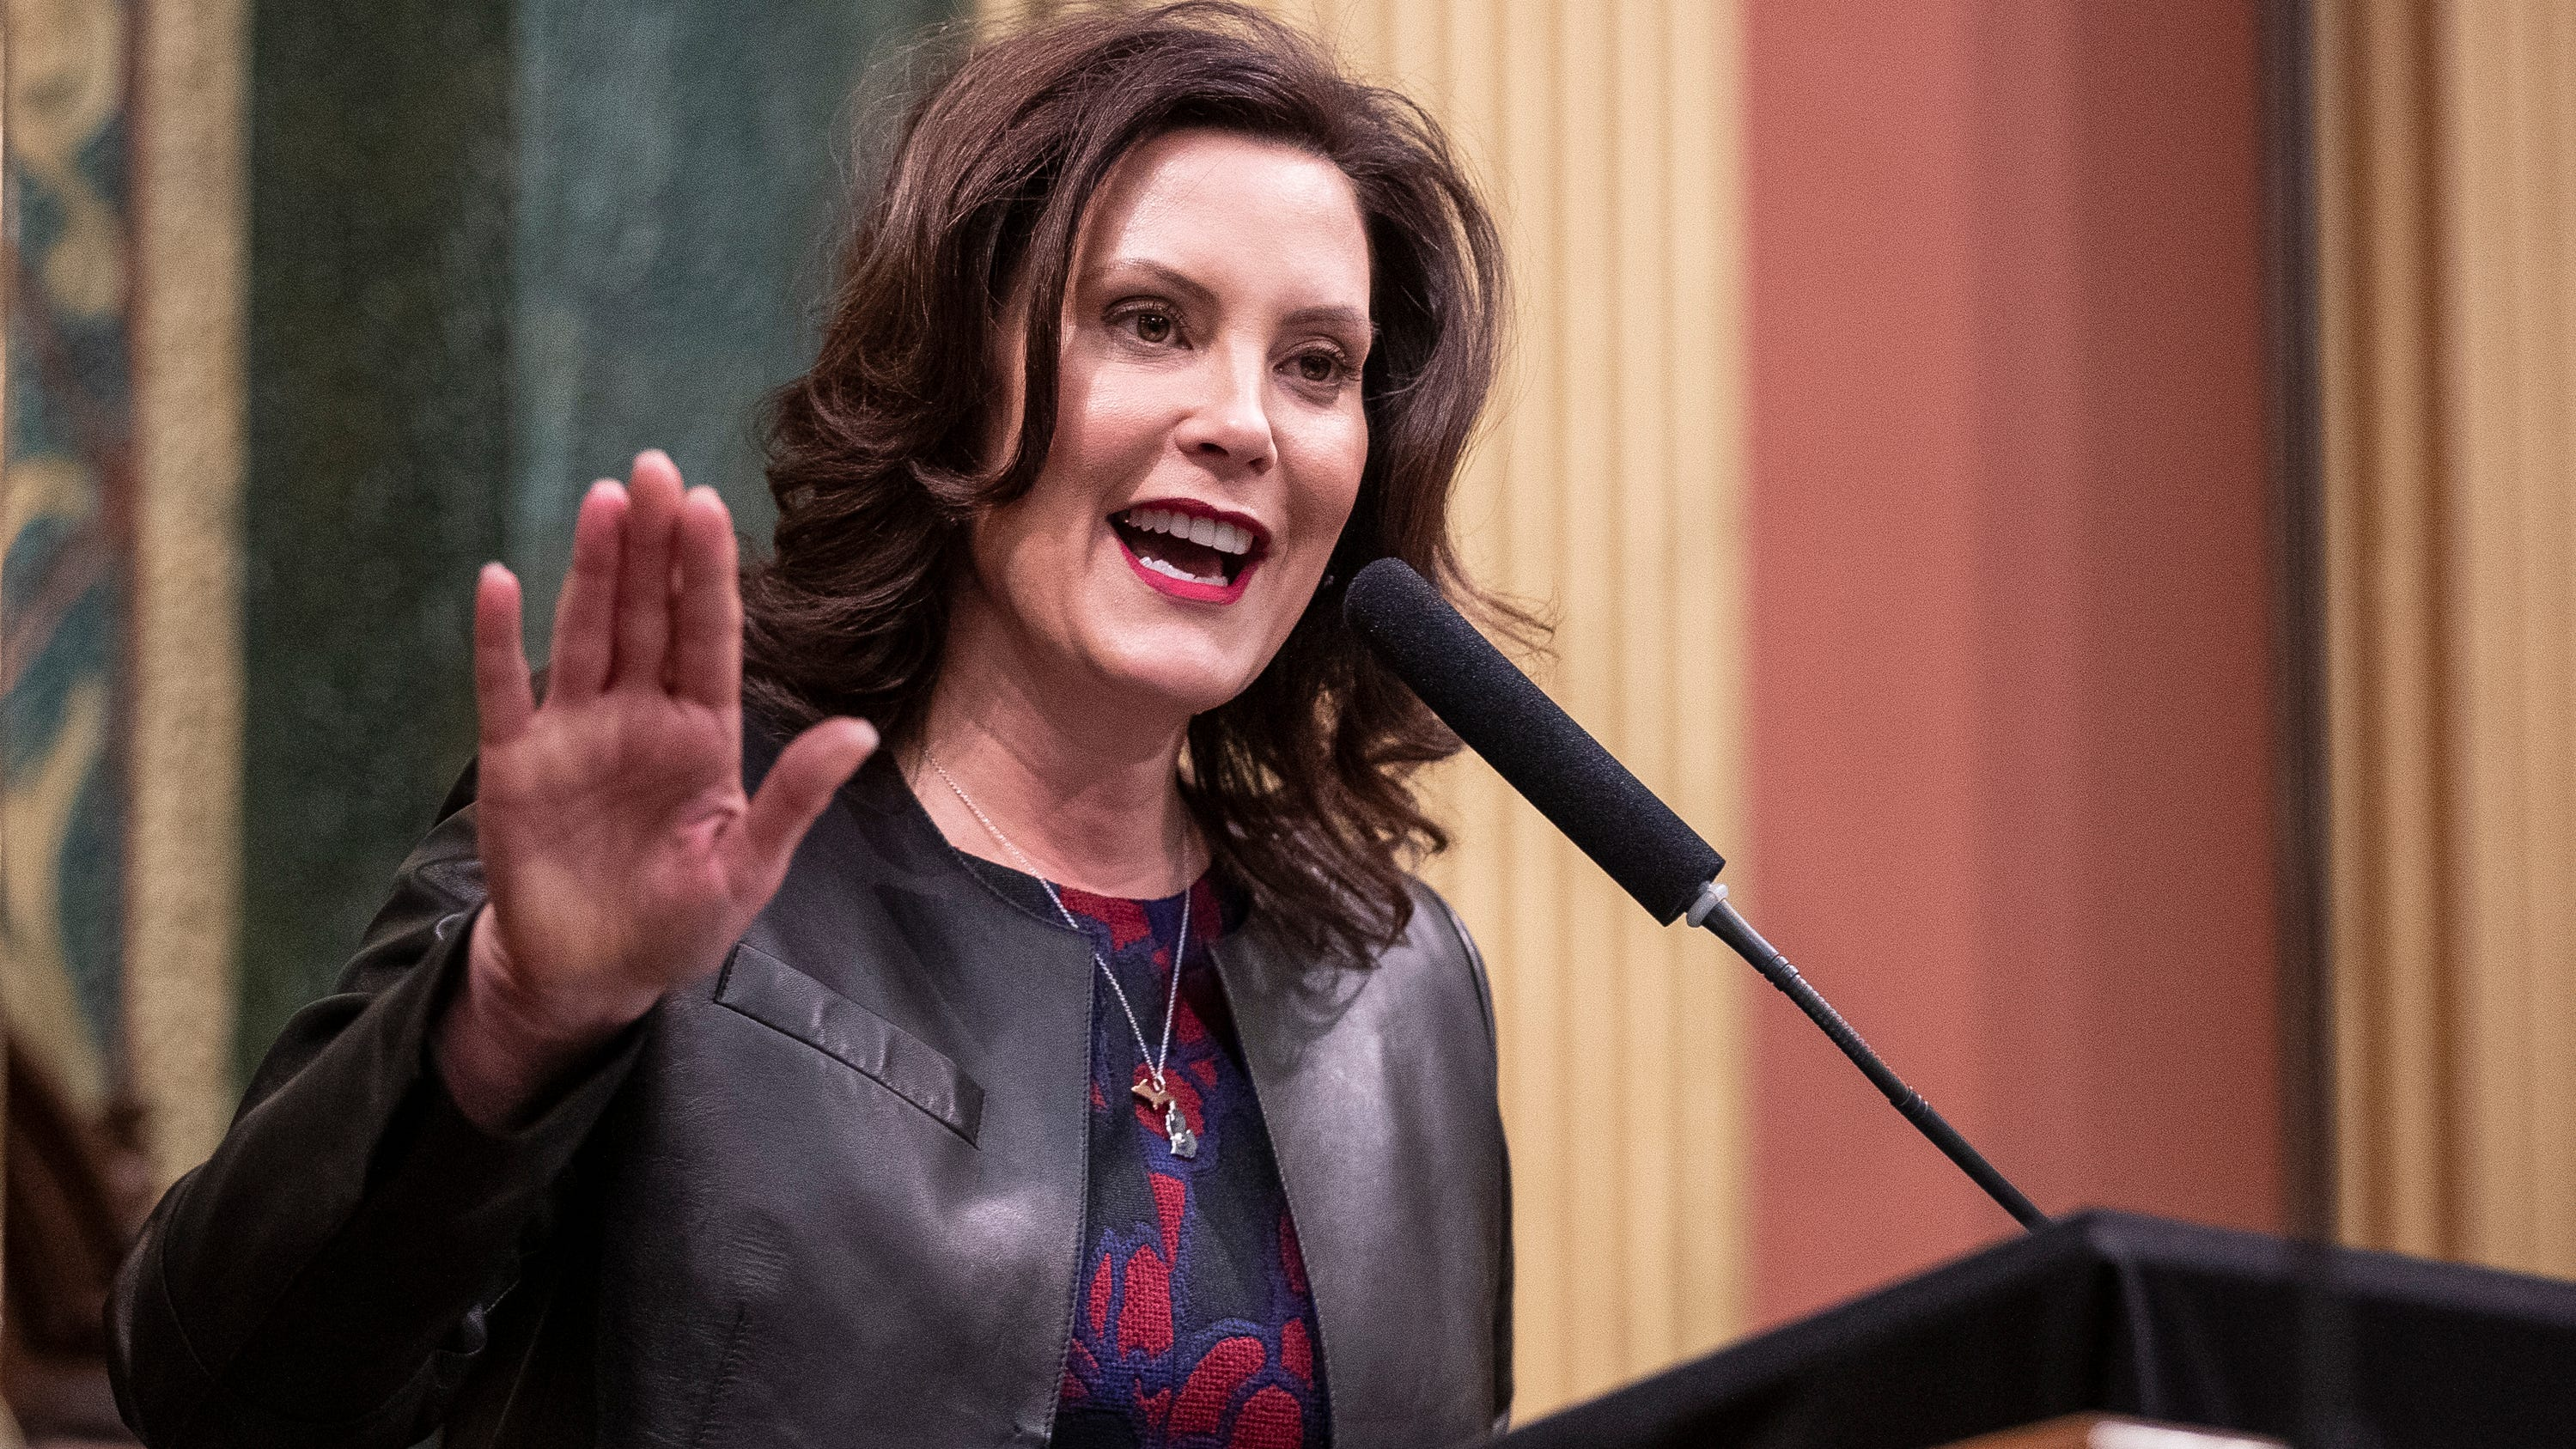 State Of The Union Gretchen Whitmer Goes After Trump On Health Care